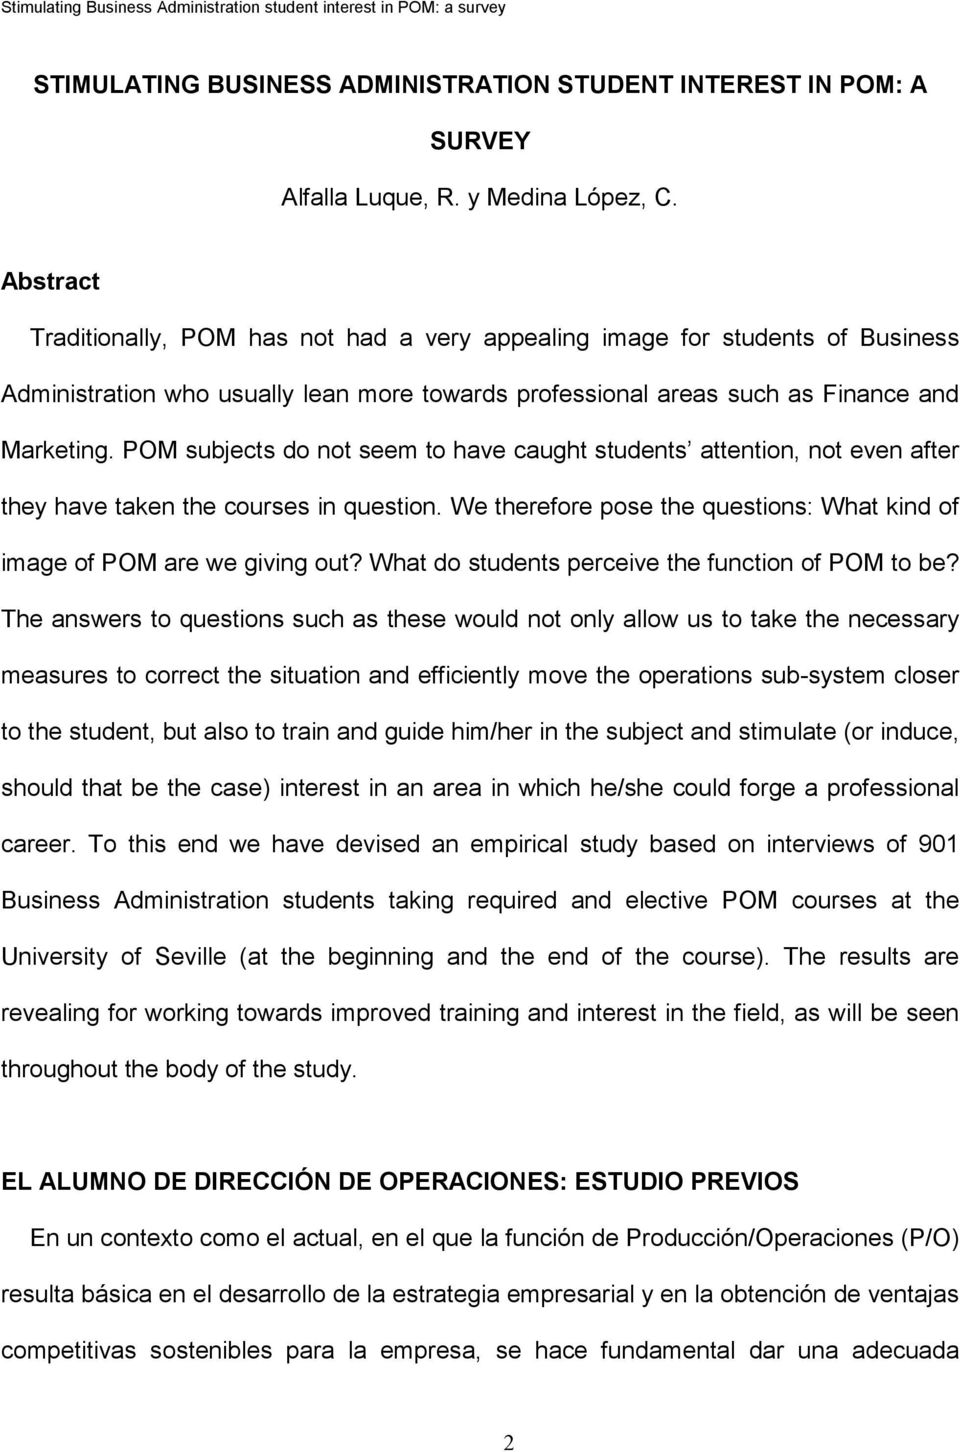 POM subjects do not seem to have caught students attention, not even after they have taken the courses in question. We therefore pose the questions: What kind of image of POM are we giving out?